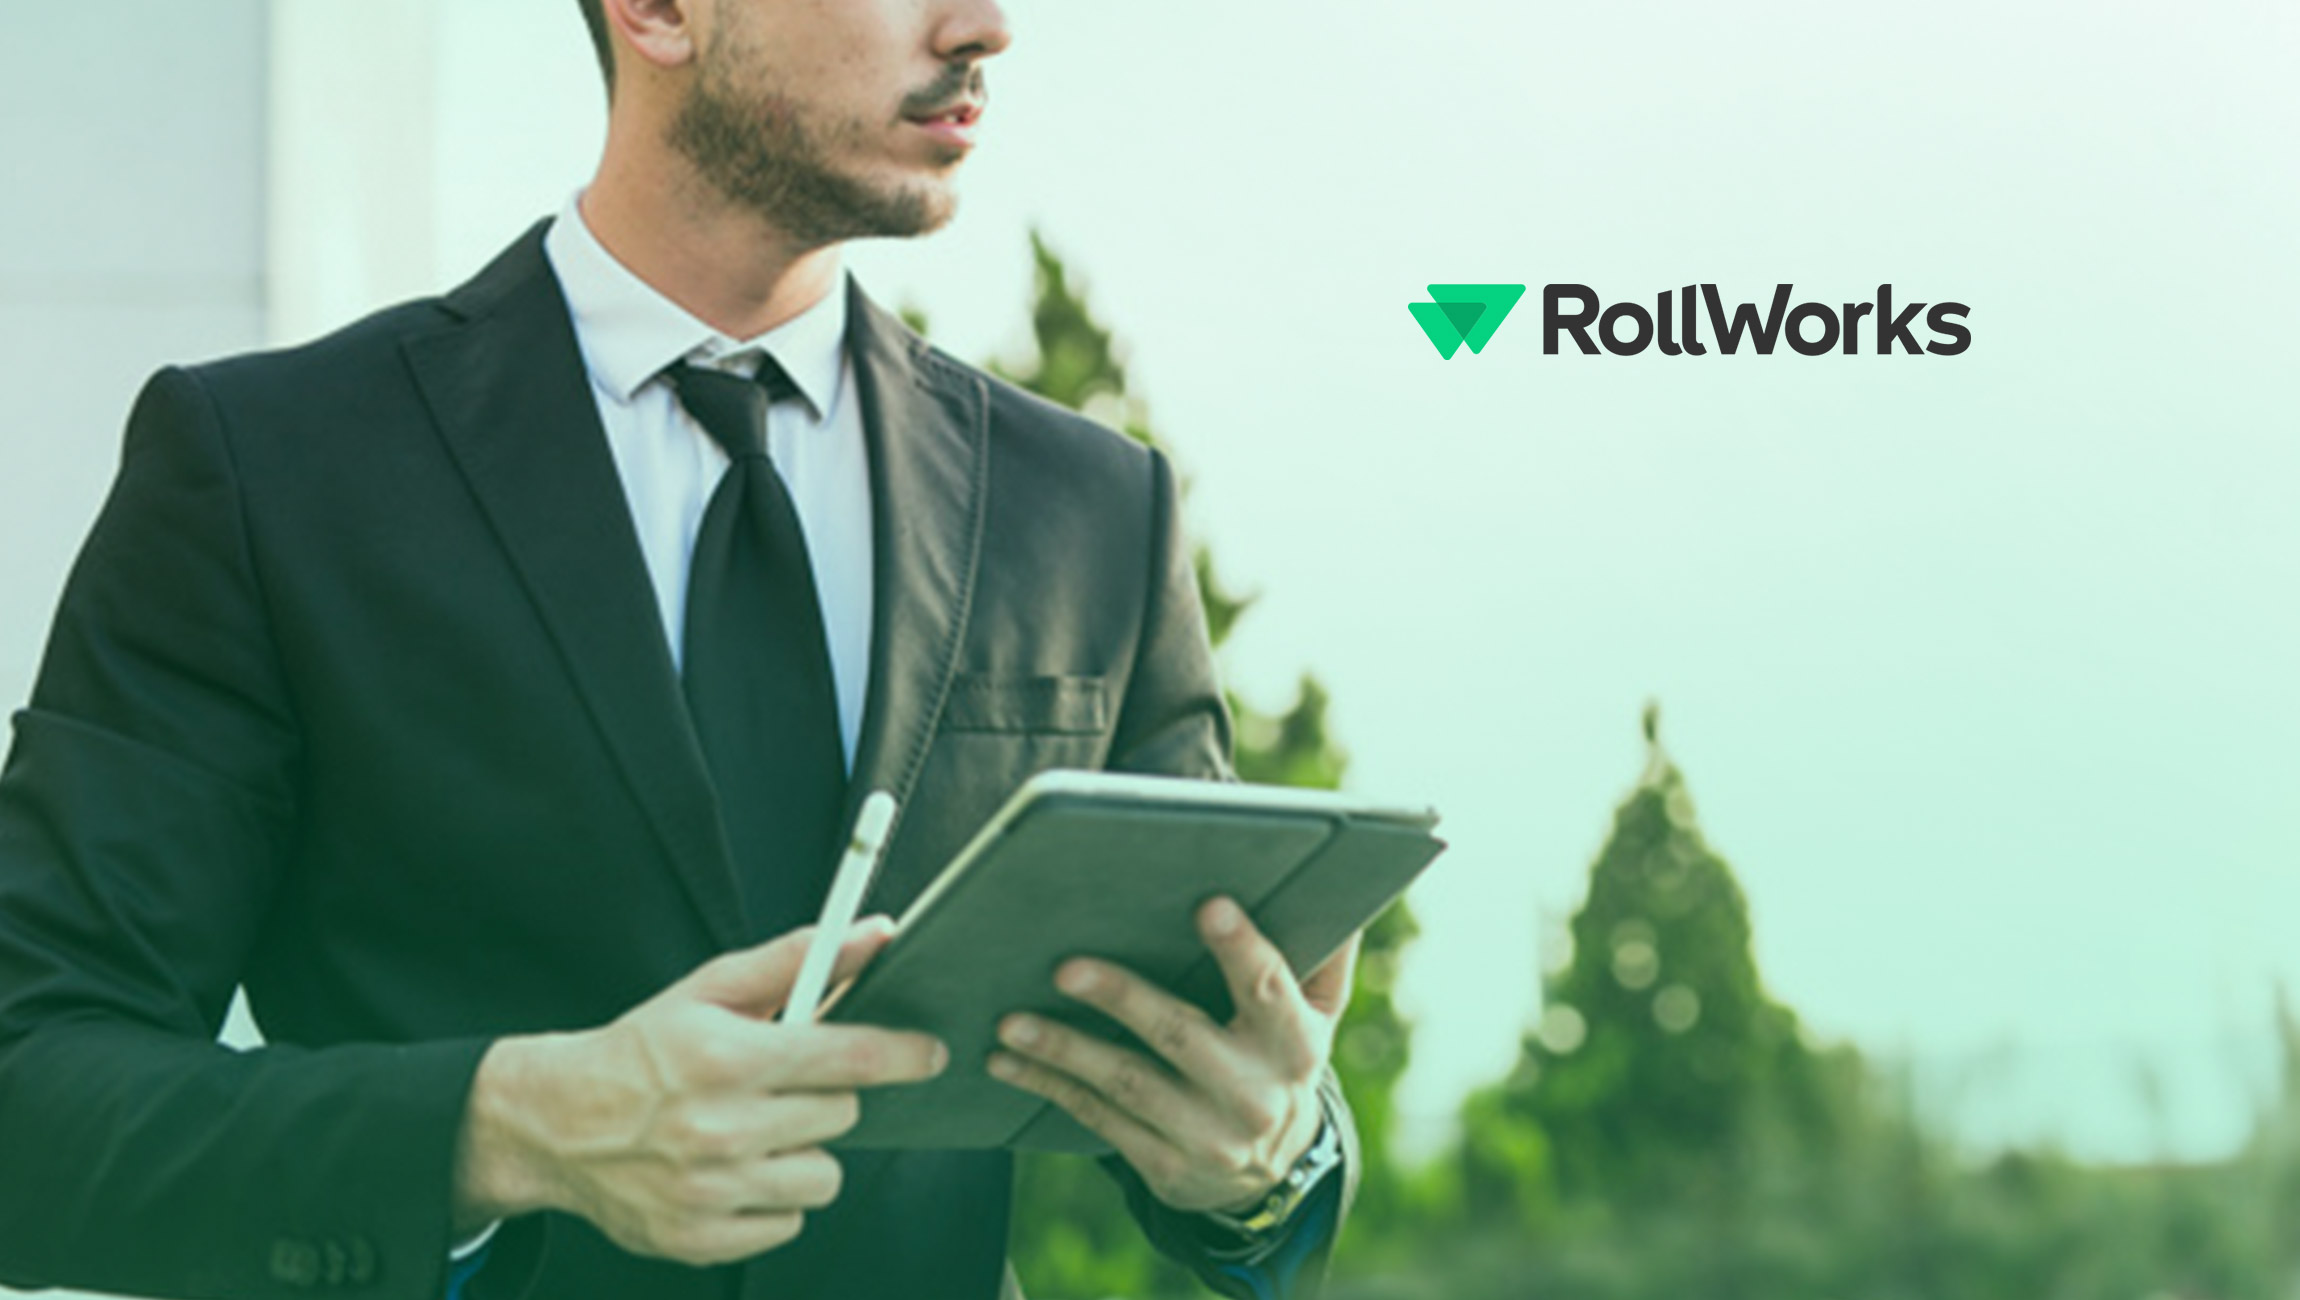 RollWorks Launches Account Scoring Powered by Machine Learning to Help Account-Based Teams Prioritize the Accounts that Matter Most